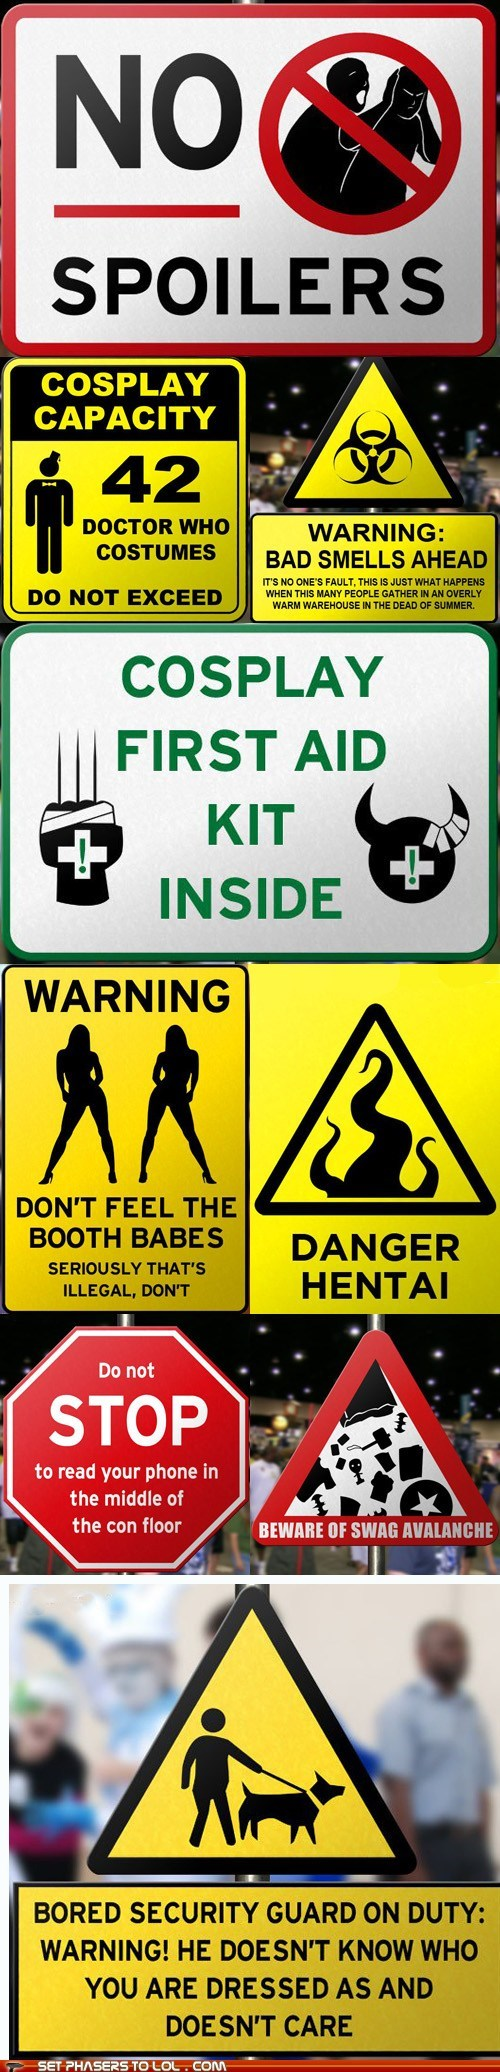 Comic-Con Warning Signs